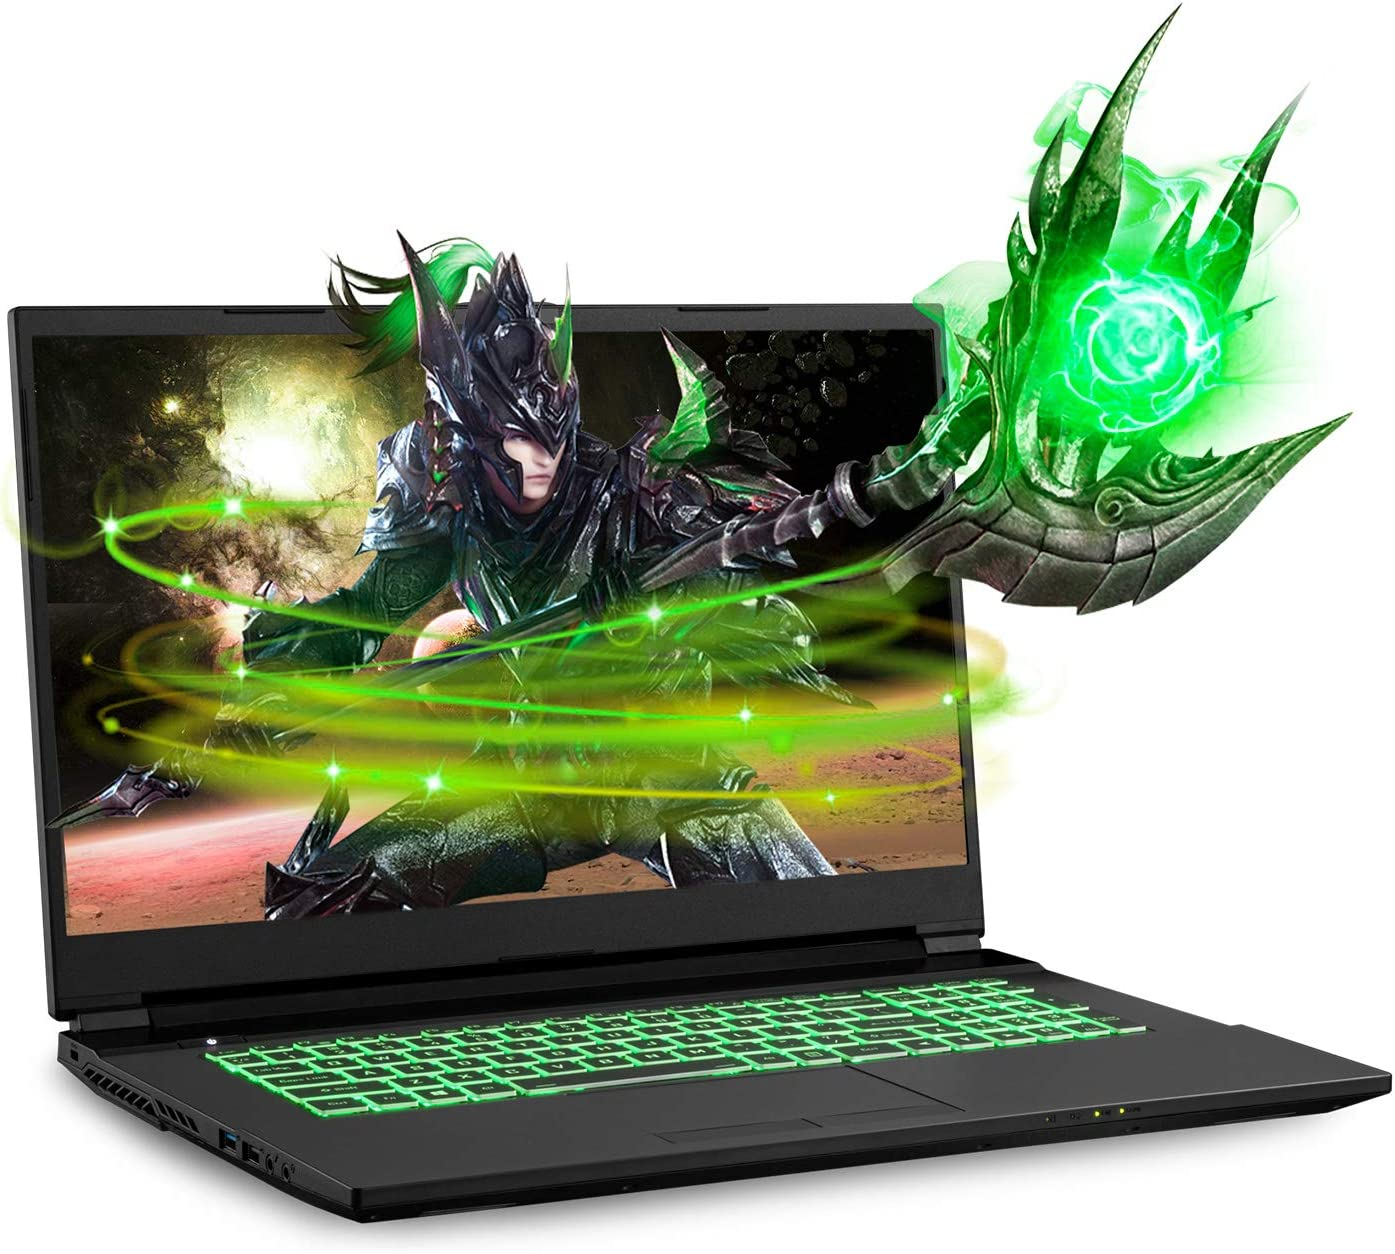 Sager NP7877DW 17.3-Inch Thin Bezel FHD 144Hz Gaming Laptop, Intel i7-10875H, RTX 2060 6GB, 16GB RAM, 500GB NVMe SSD, Windows 10